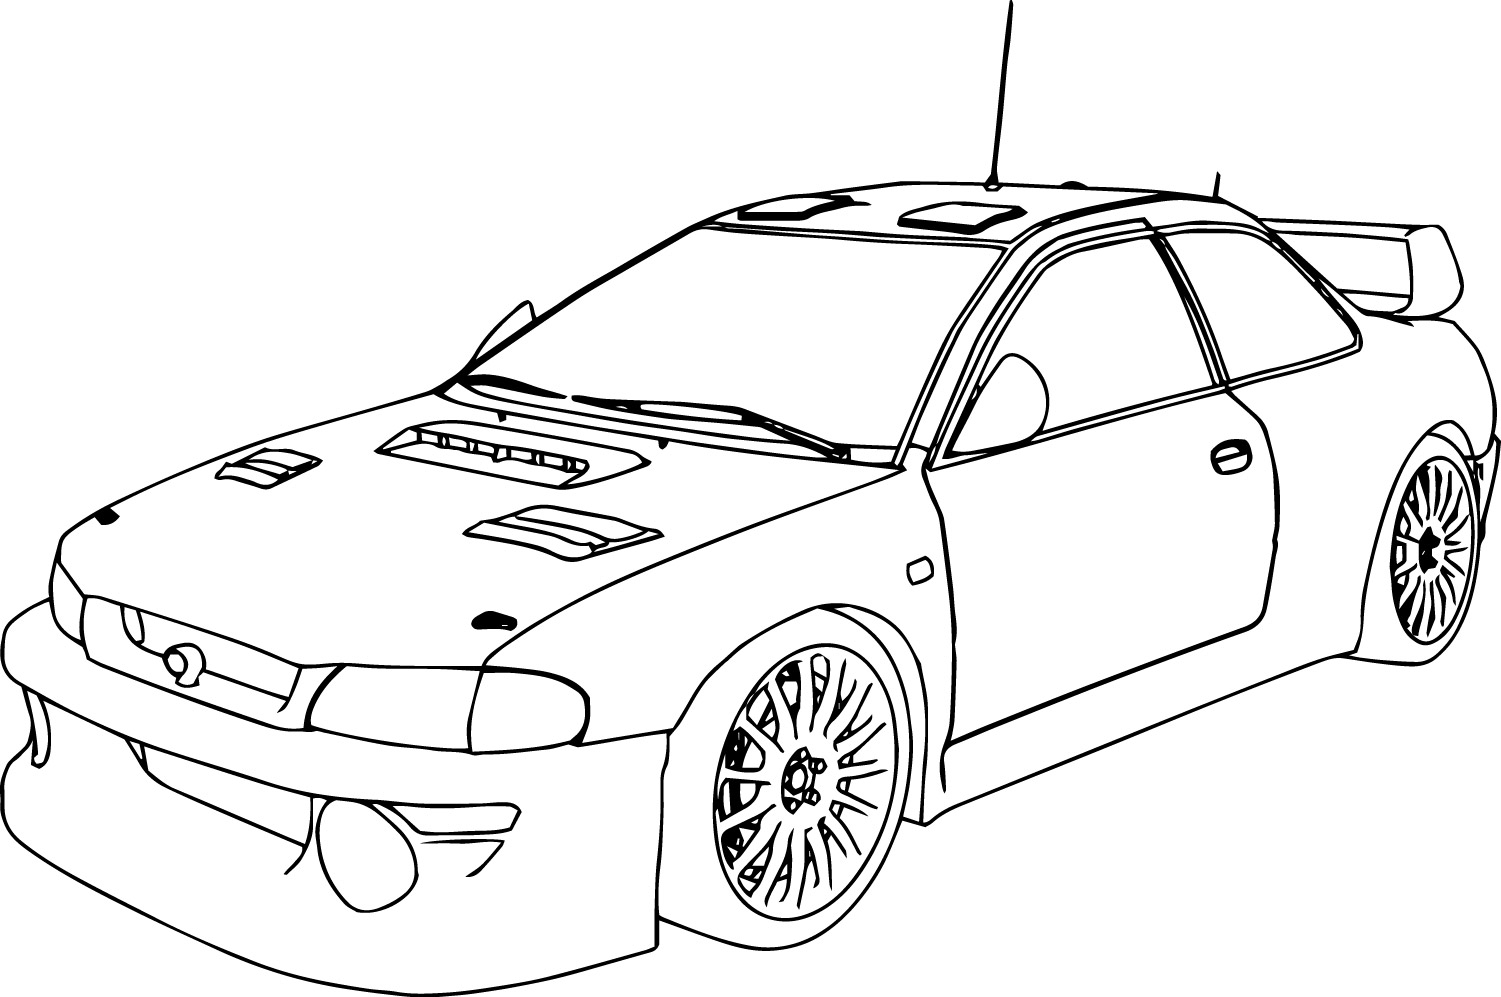 racing car pictures to colour in 45 race car coloring pages and crafts cakes for kids in pictures racing colour car to